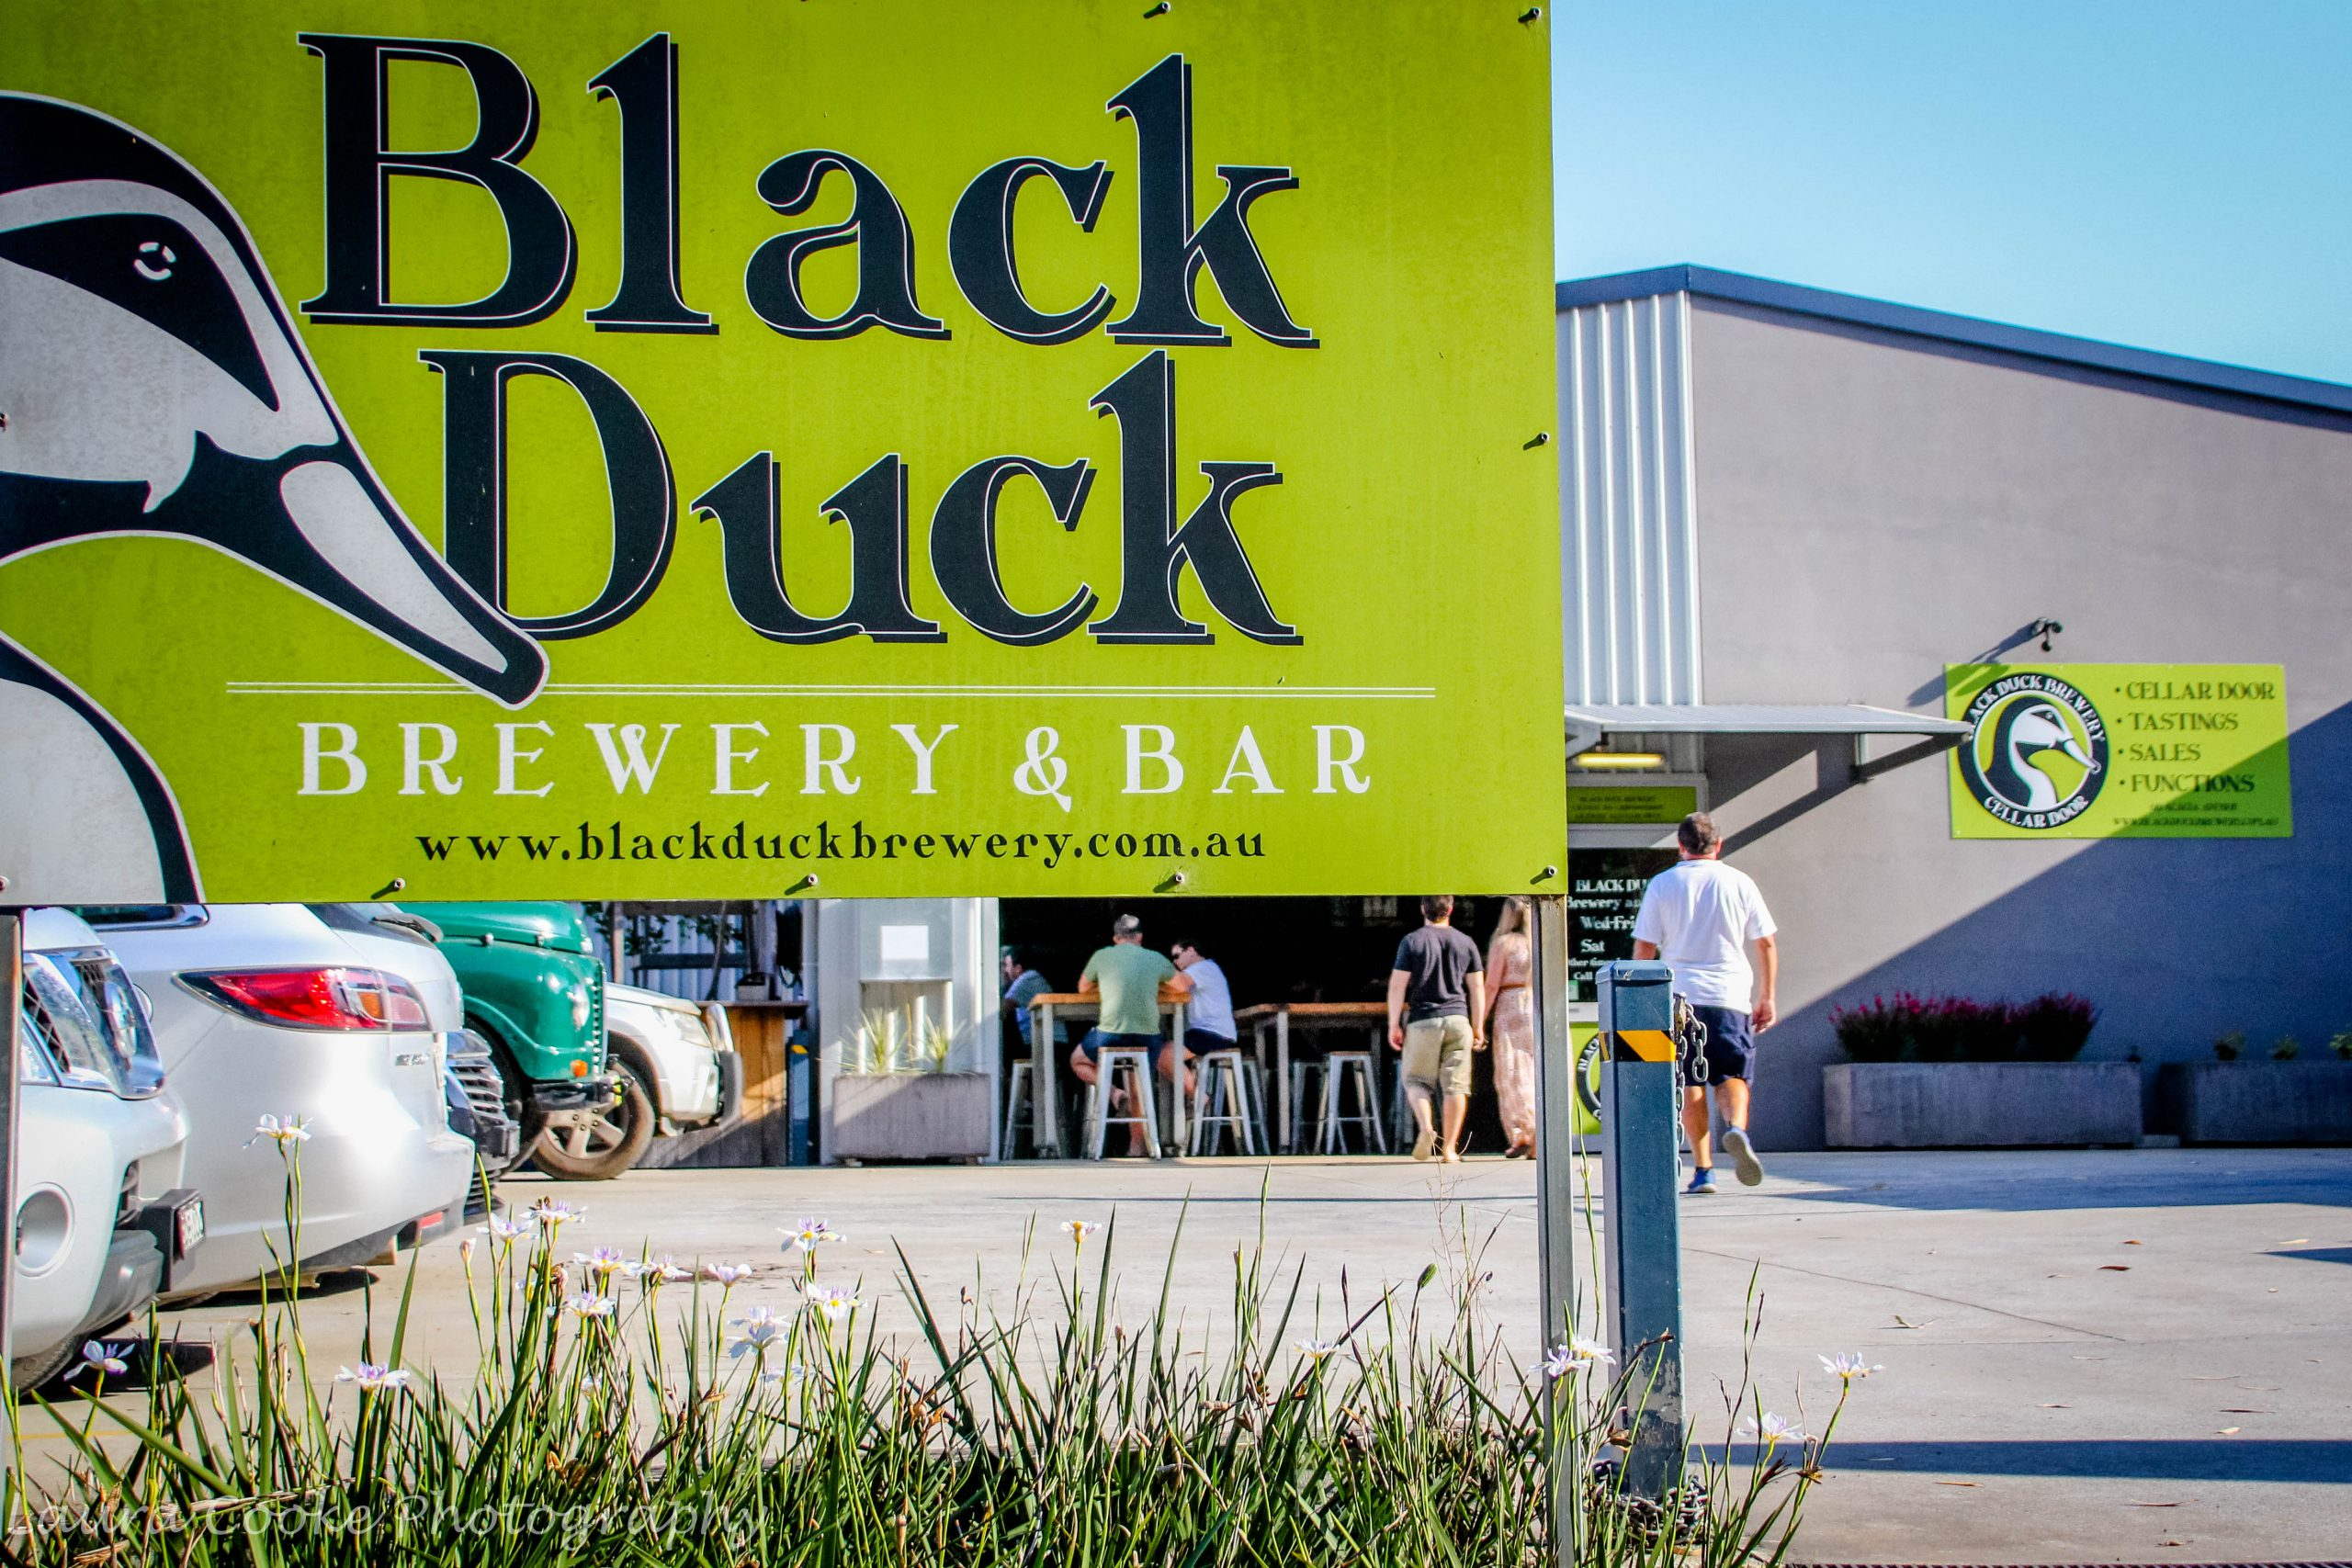 What's On in May at Black Duck Brewery?